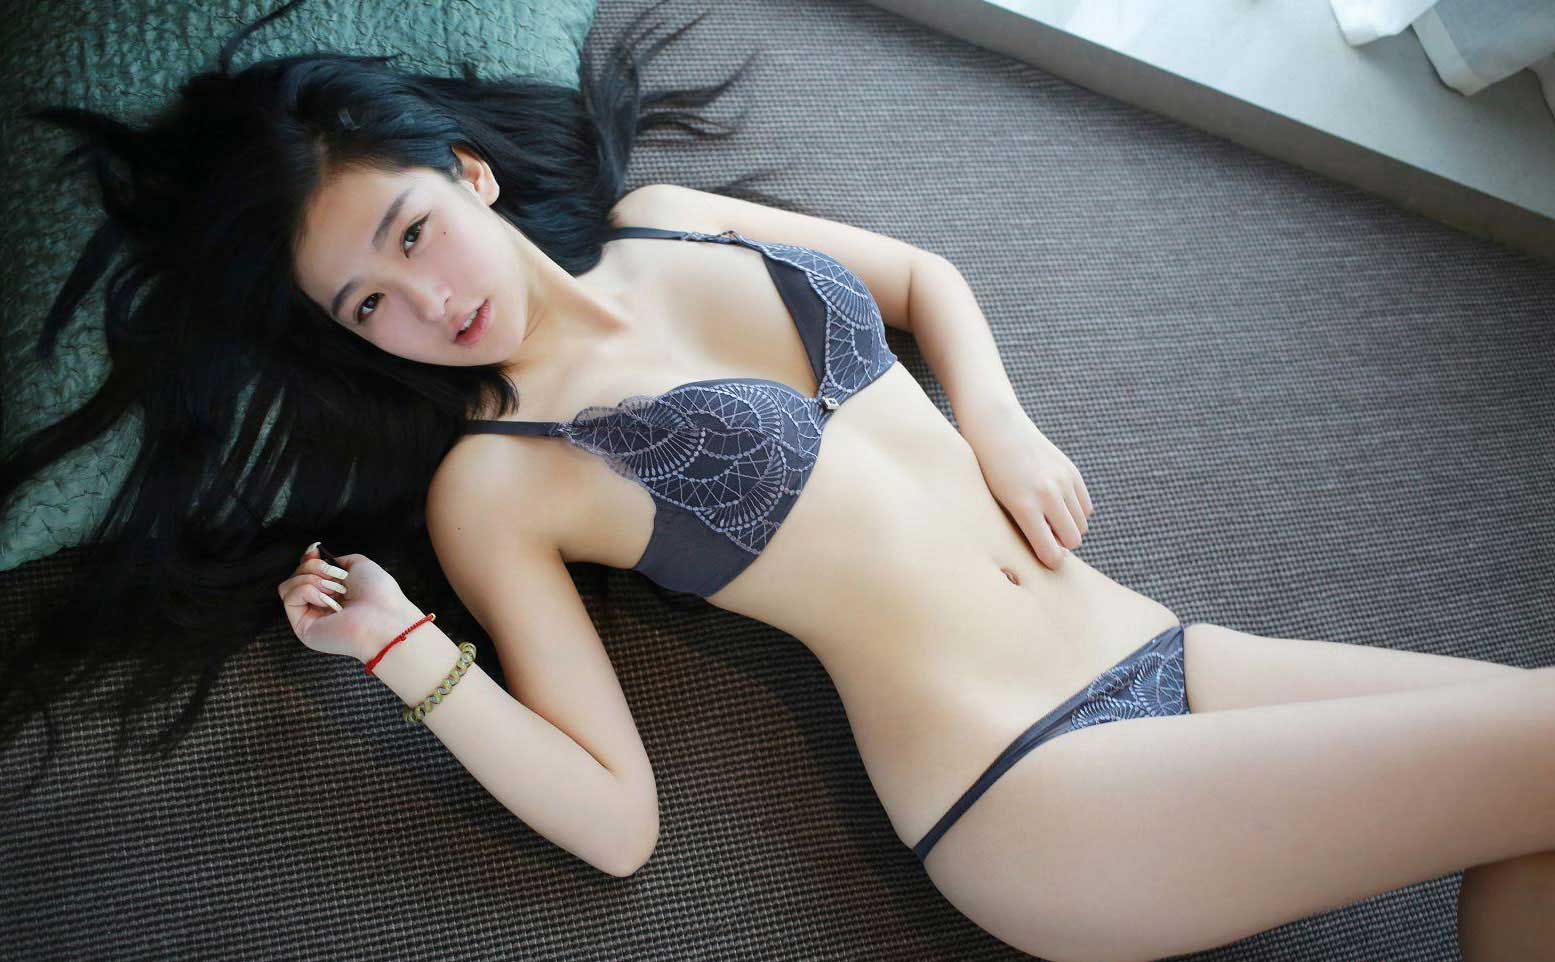 asian escort turku